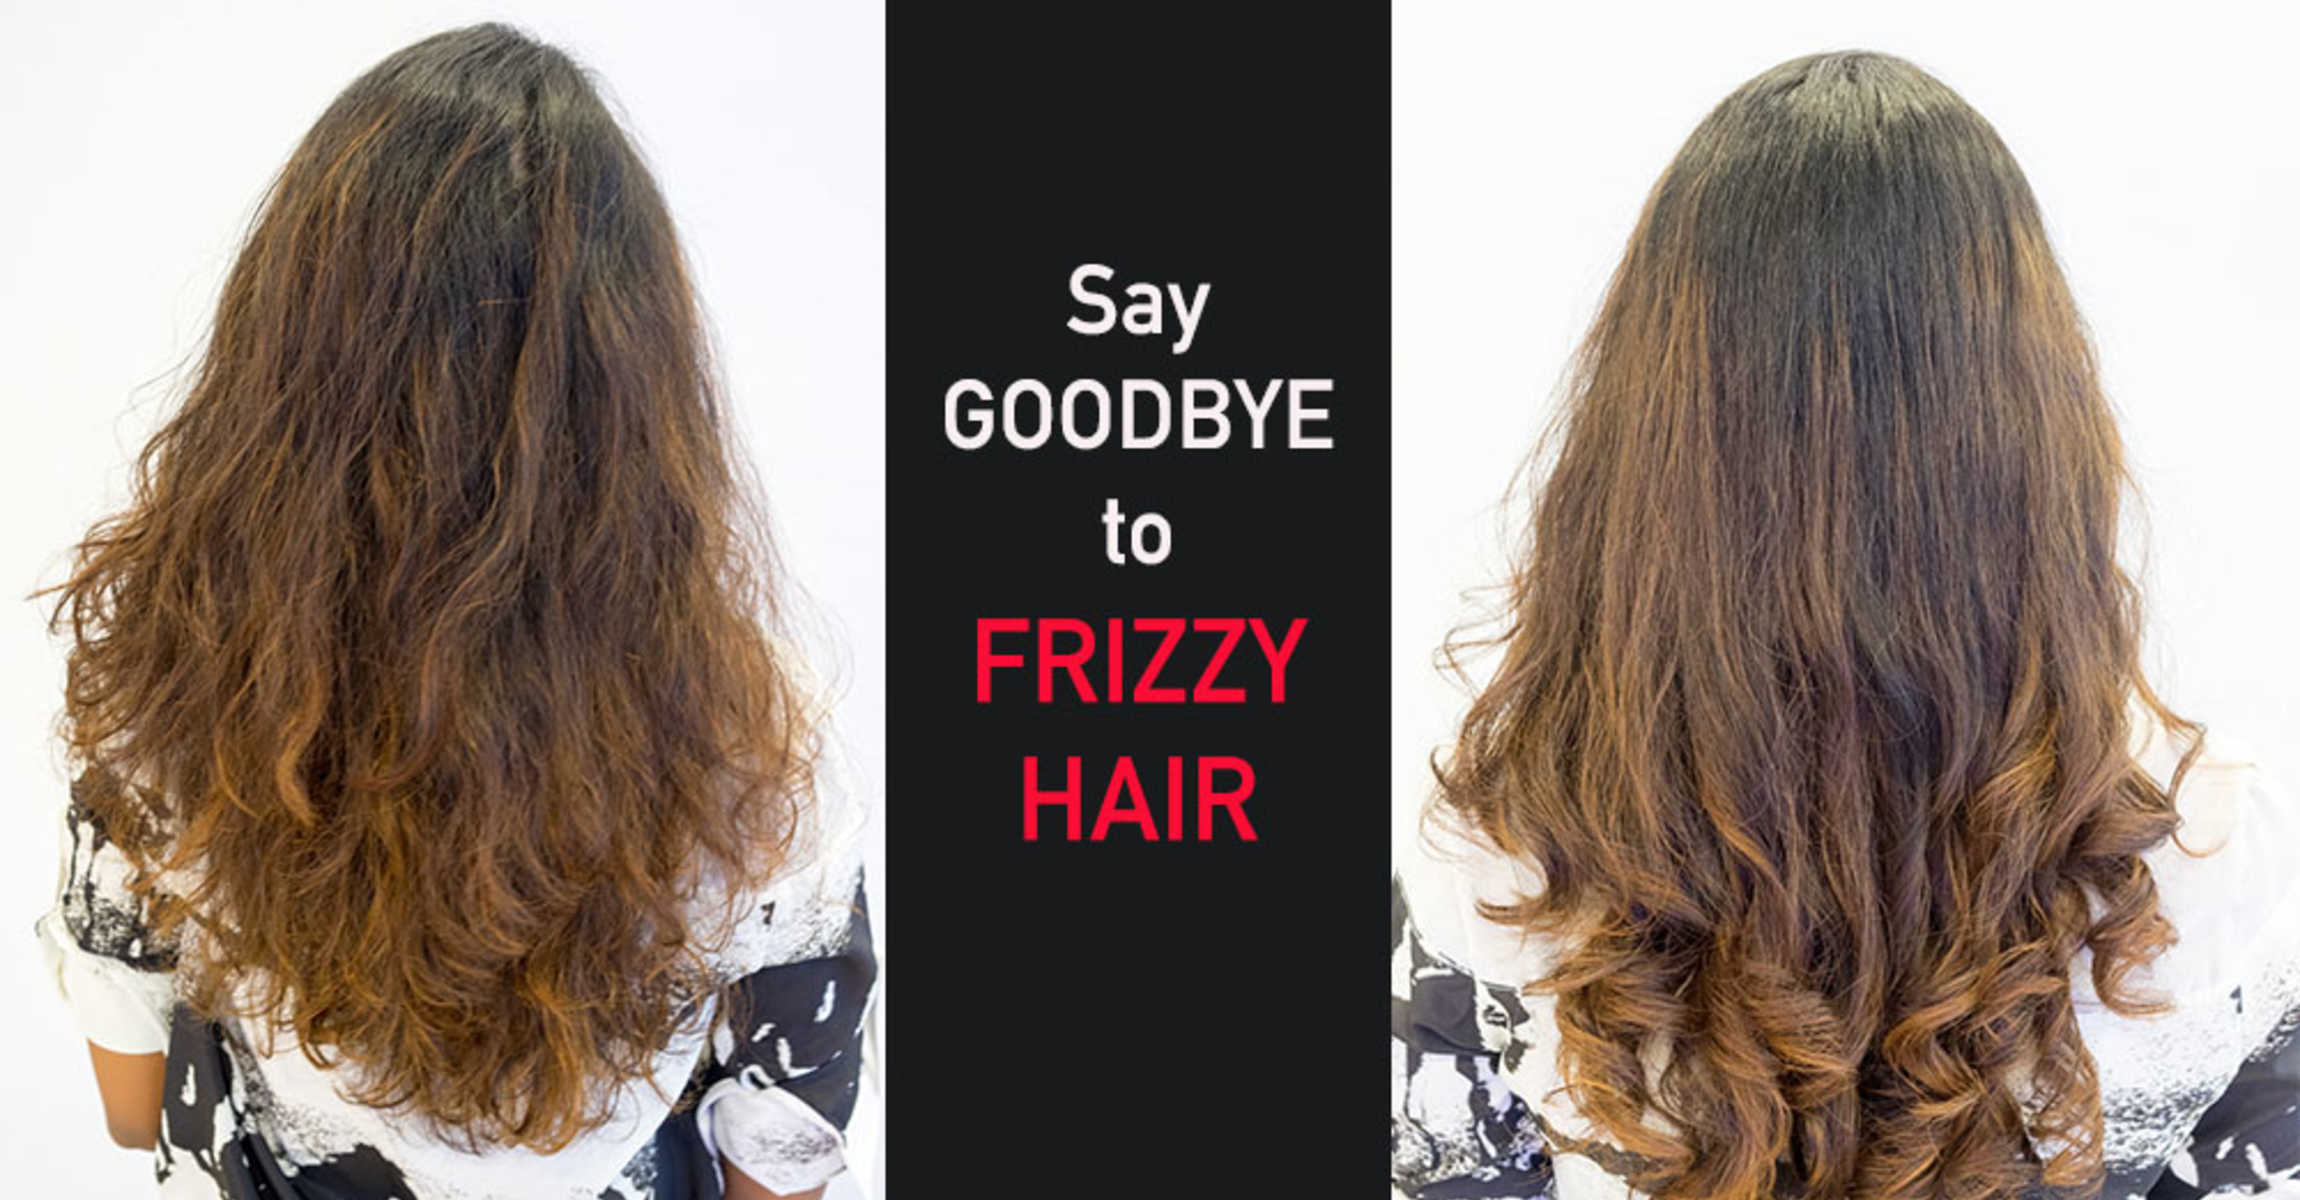 A Keratin Infused Retexturizing Service that Lasts: Taming Agent C's Frizzy Curls with Chez Vous Trilogy System